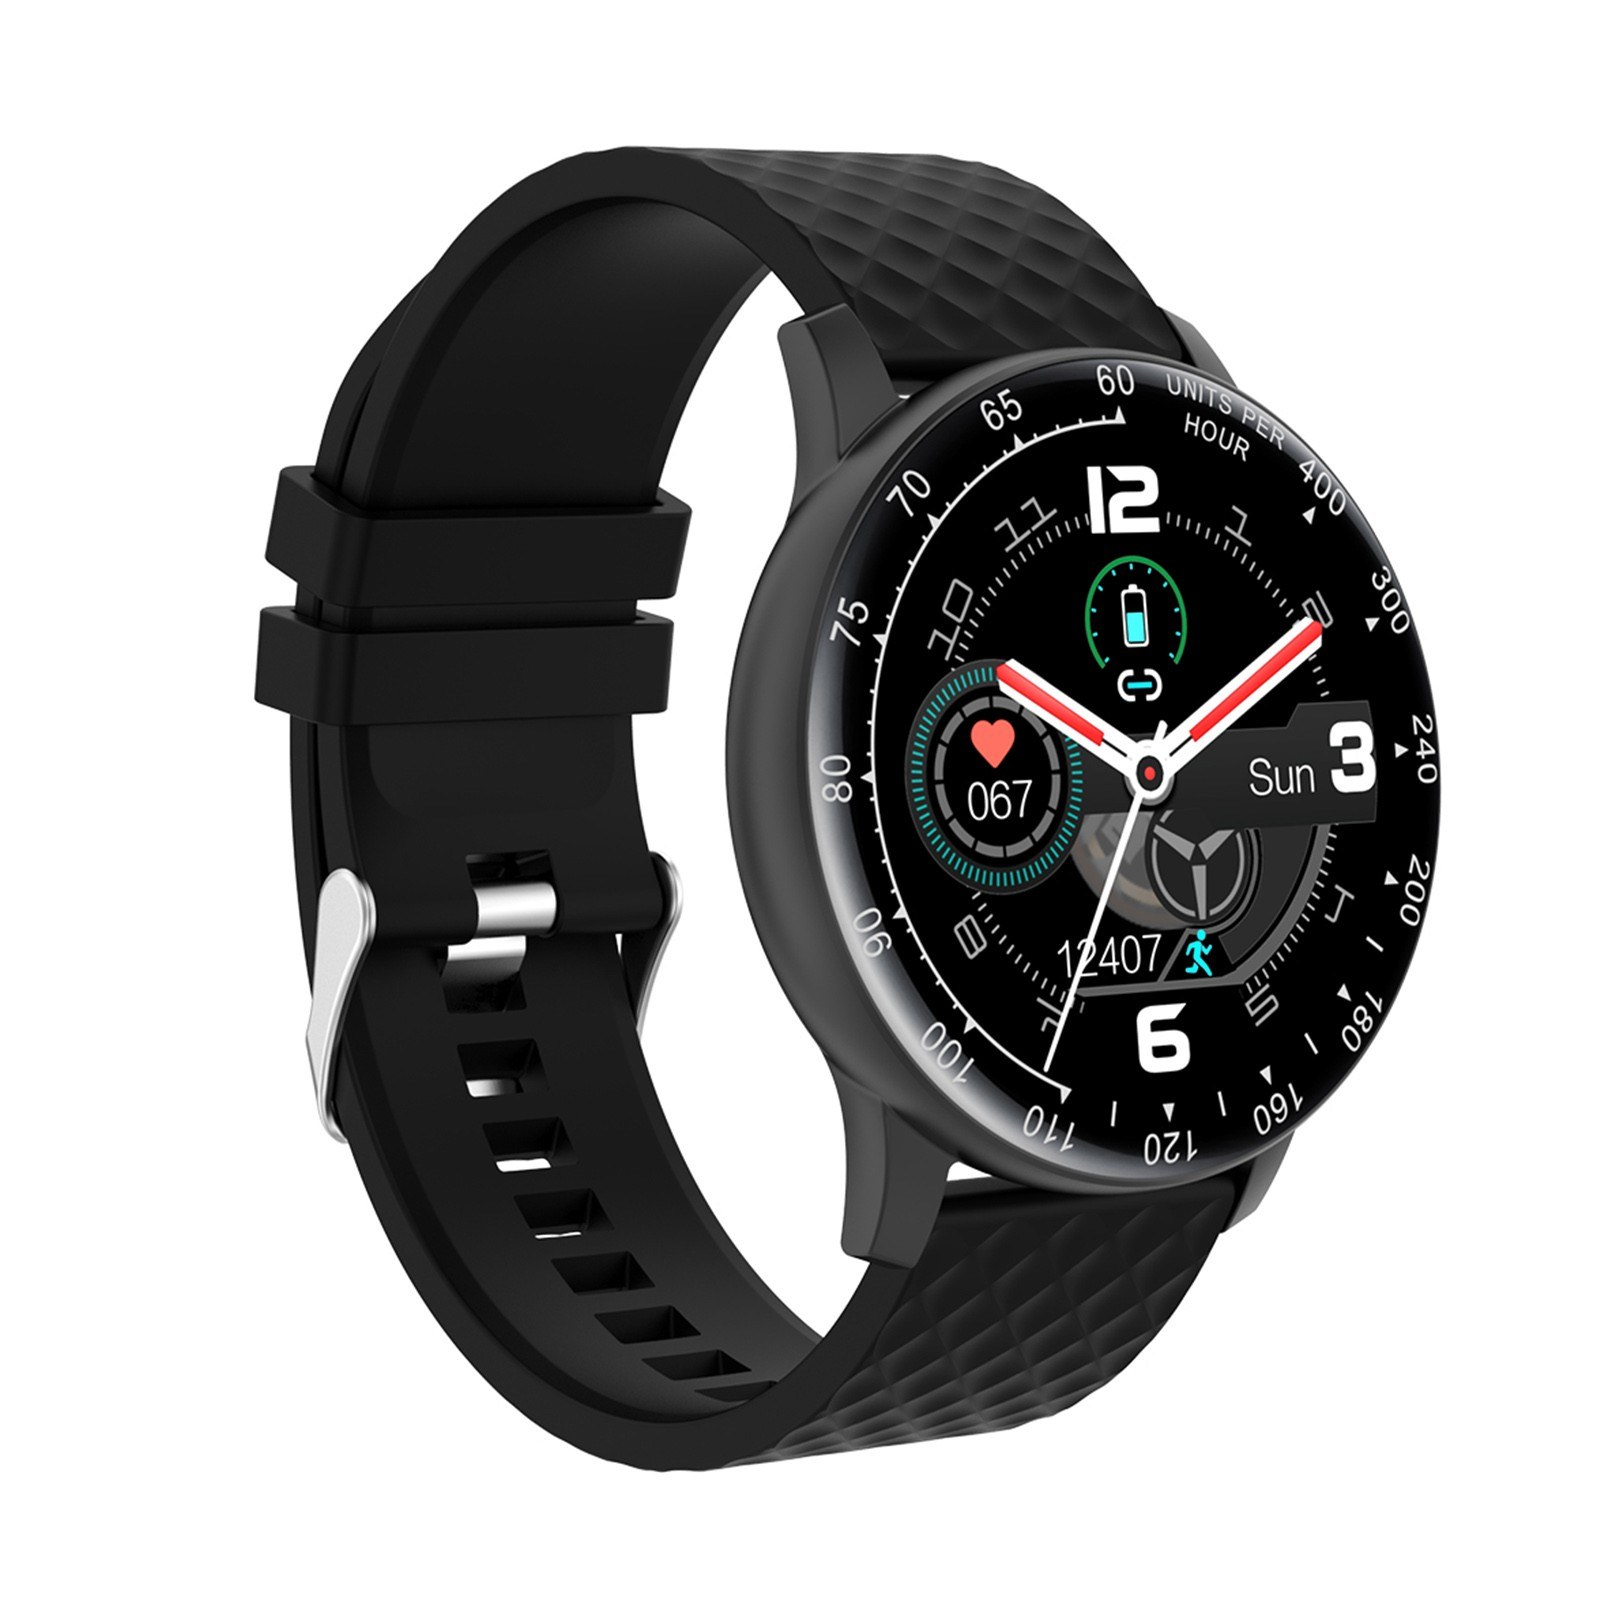 """Tomtop - 37% OFF 1.28"""" TFT LCD Screen Smartwatch Fitness Tracker, Free Shipping $23.49"""